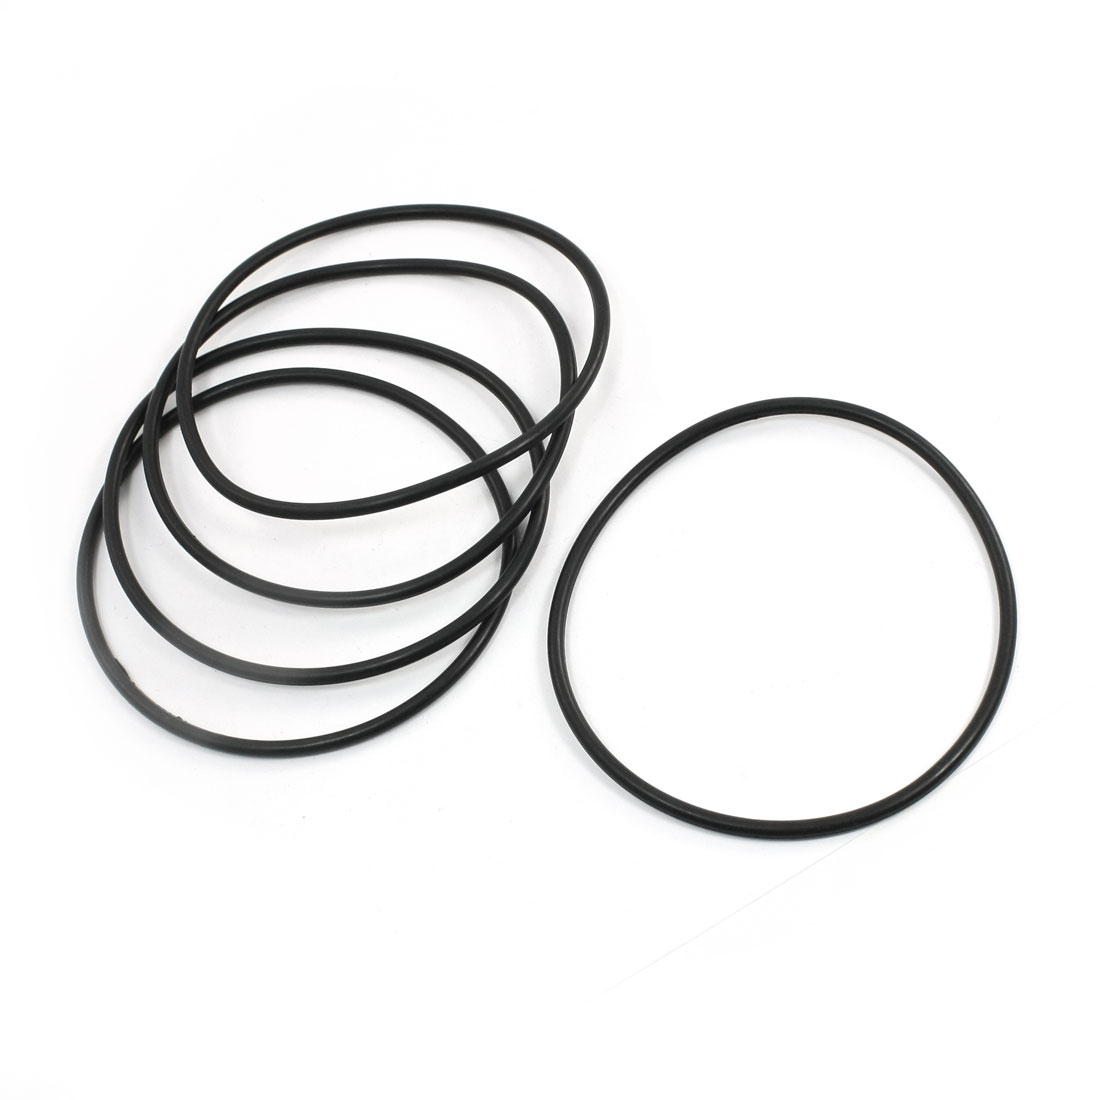 Unique Bargains 5pcs Flexible Rubber O Ring Seal Washer Replacement Black 110mm x 4mm